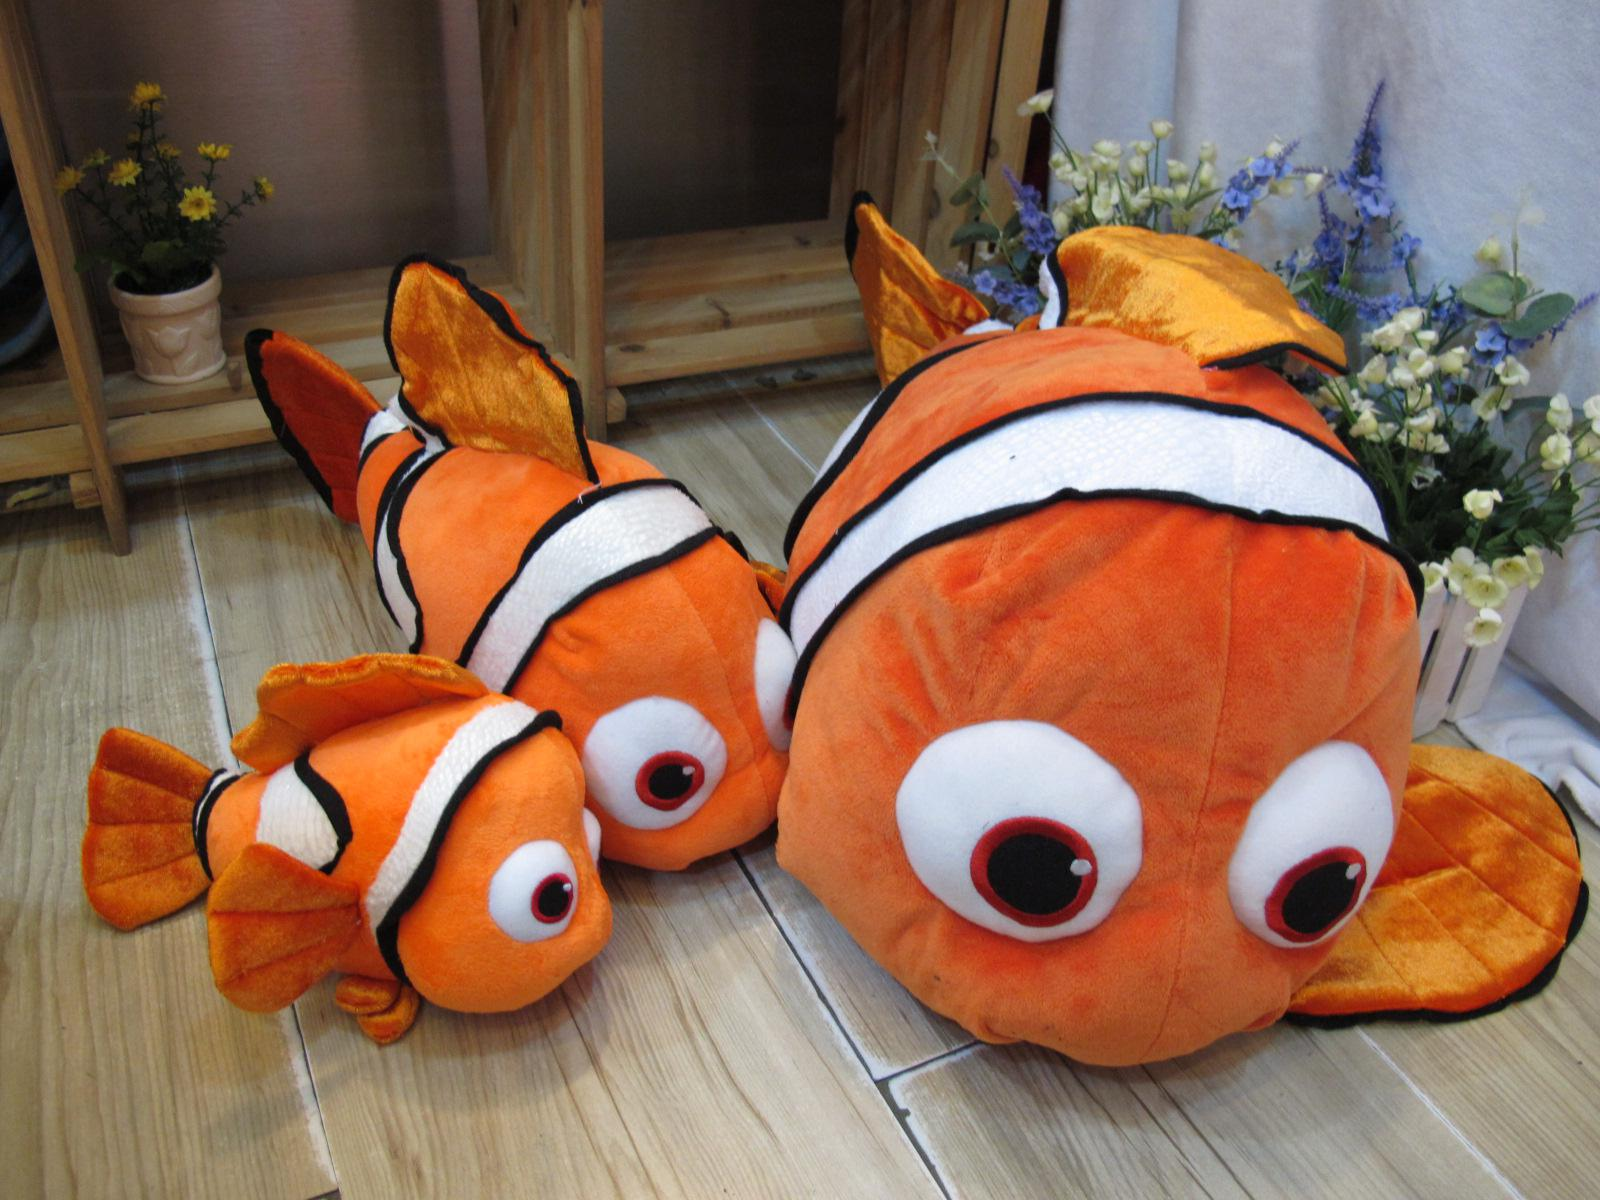 Have finding nemo stuffed toys commit error